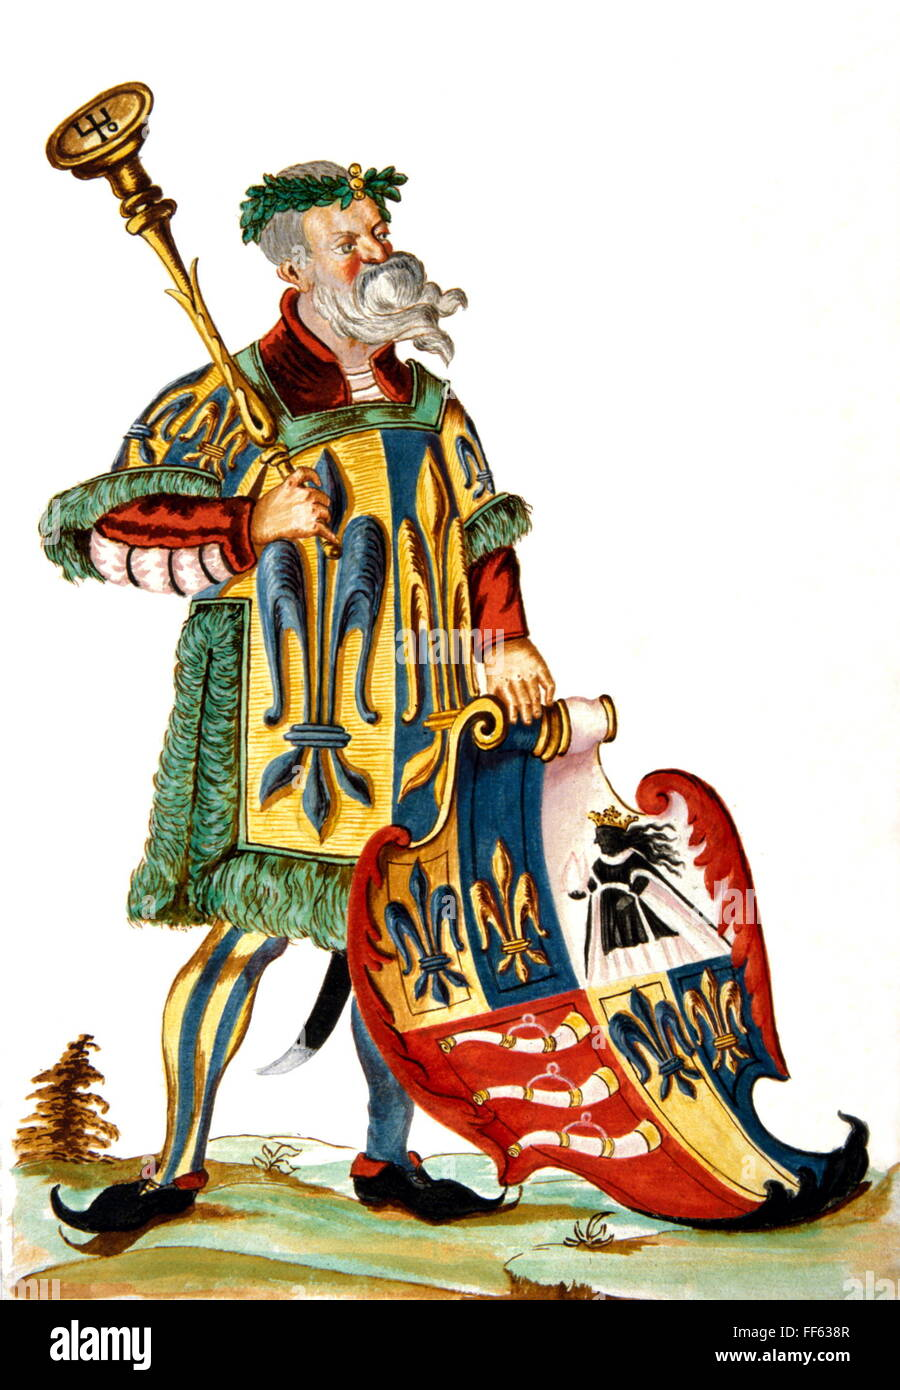 heraldry, herald, herald of the Reichsgraf (Count of the Holy Roman Empire) Fugger with shield, Fugger's arms book, Stock Photo